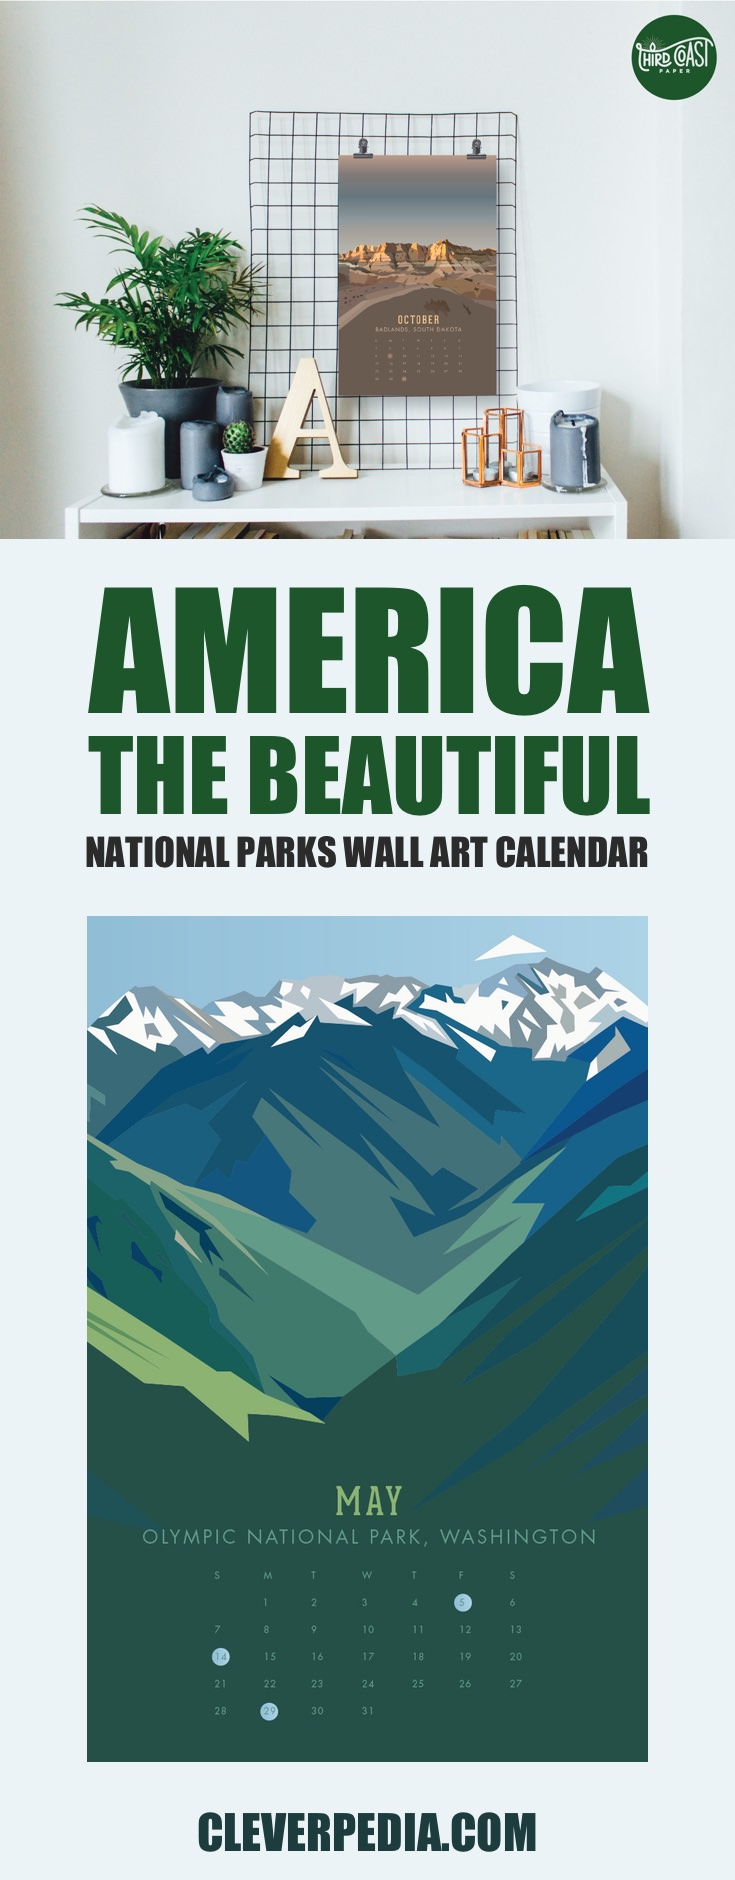 This gorgeous illustrated wall art poster calendar by Third Coast Paper features 12 different National Parks, rendered in a geometric style with a low number of colors on each page. The wall calendar includes the following National Parks: Acadia, Great Smoky Mountain, Congaree, Grand Canyon, Olympic, Death Valley, Arches, Hawaii Volcano, Glacier, Badlands, Sequoia, and Yellowstone.